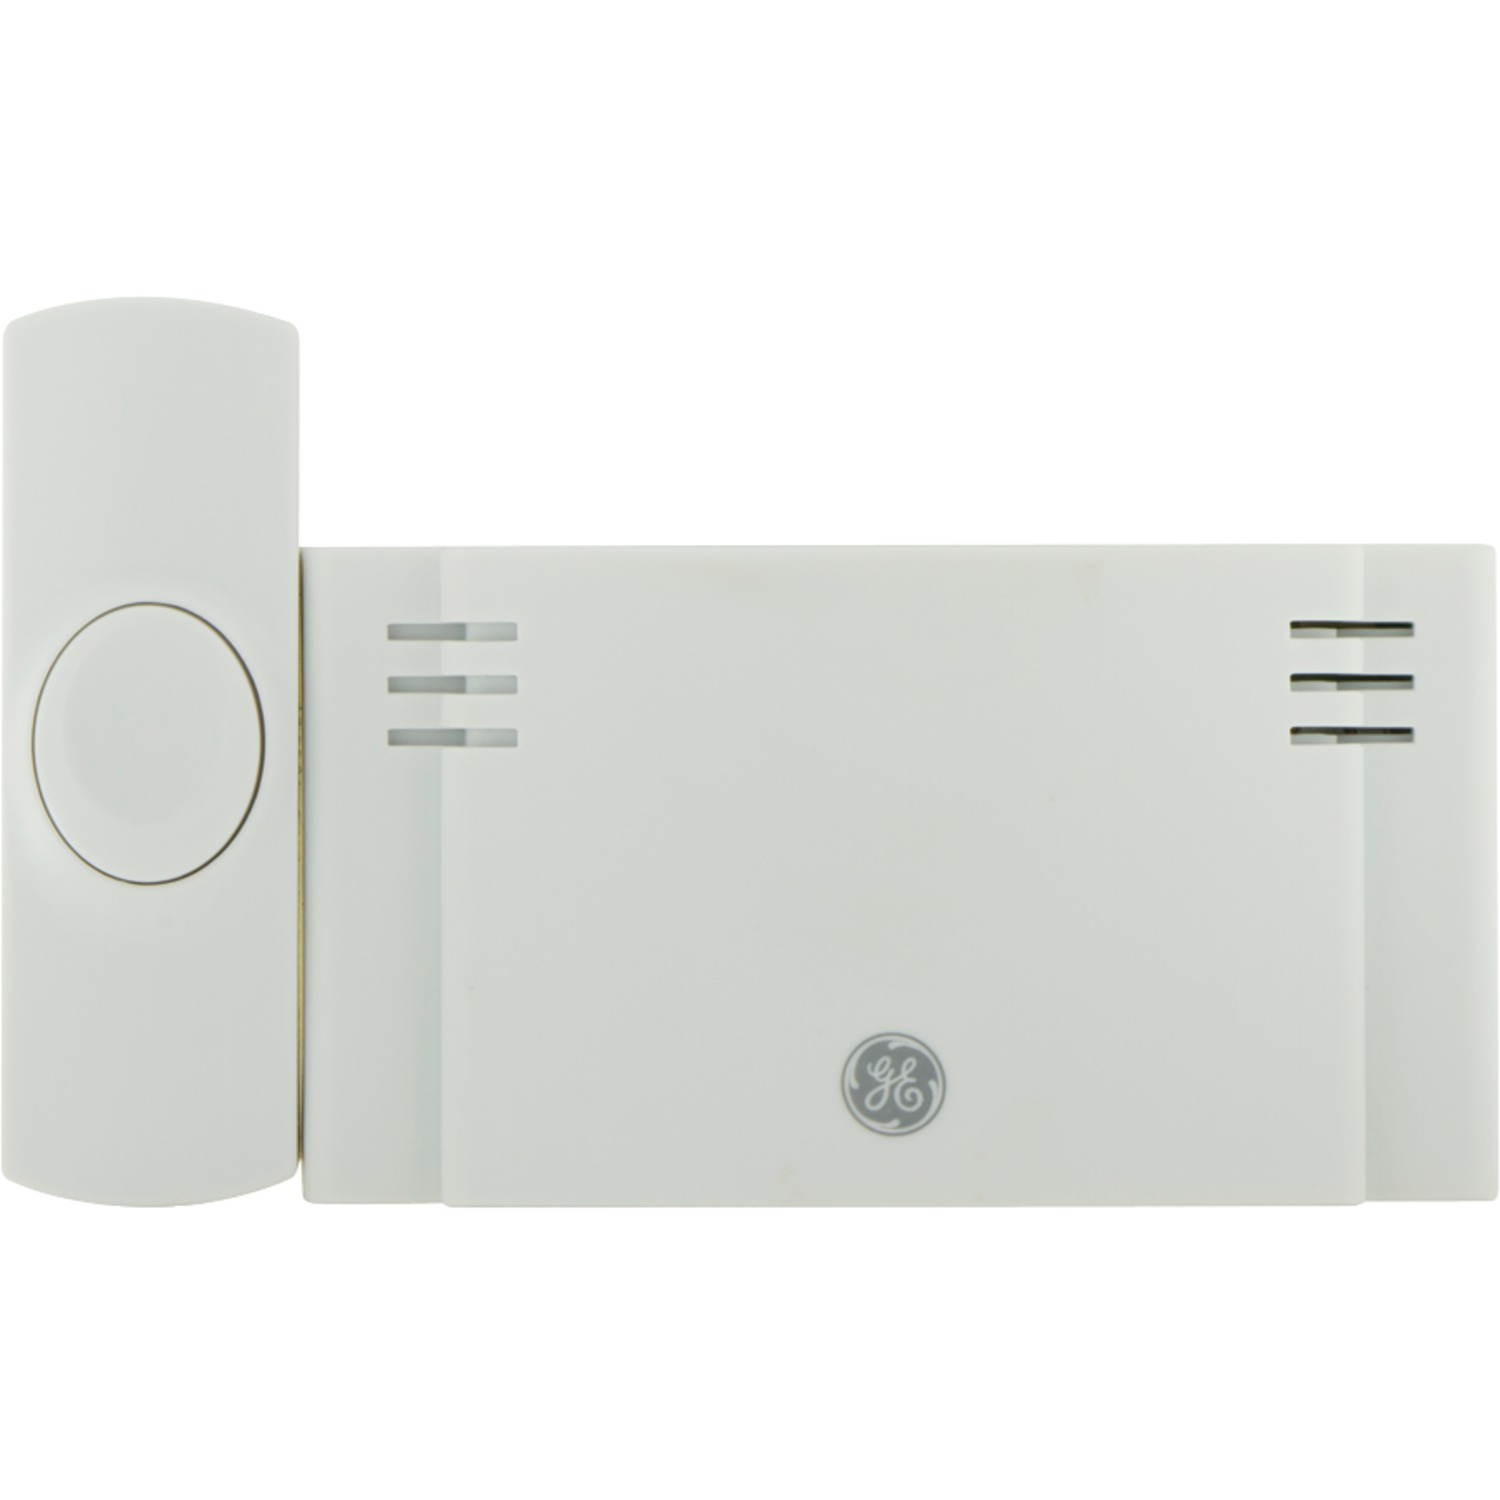 GE Wireless Doorbell Kit, 2 Chime Melodies, 1 Receiver, 1 Push Buttons,